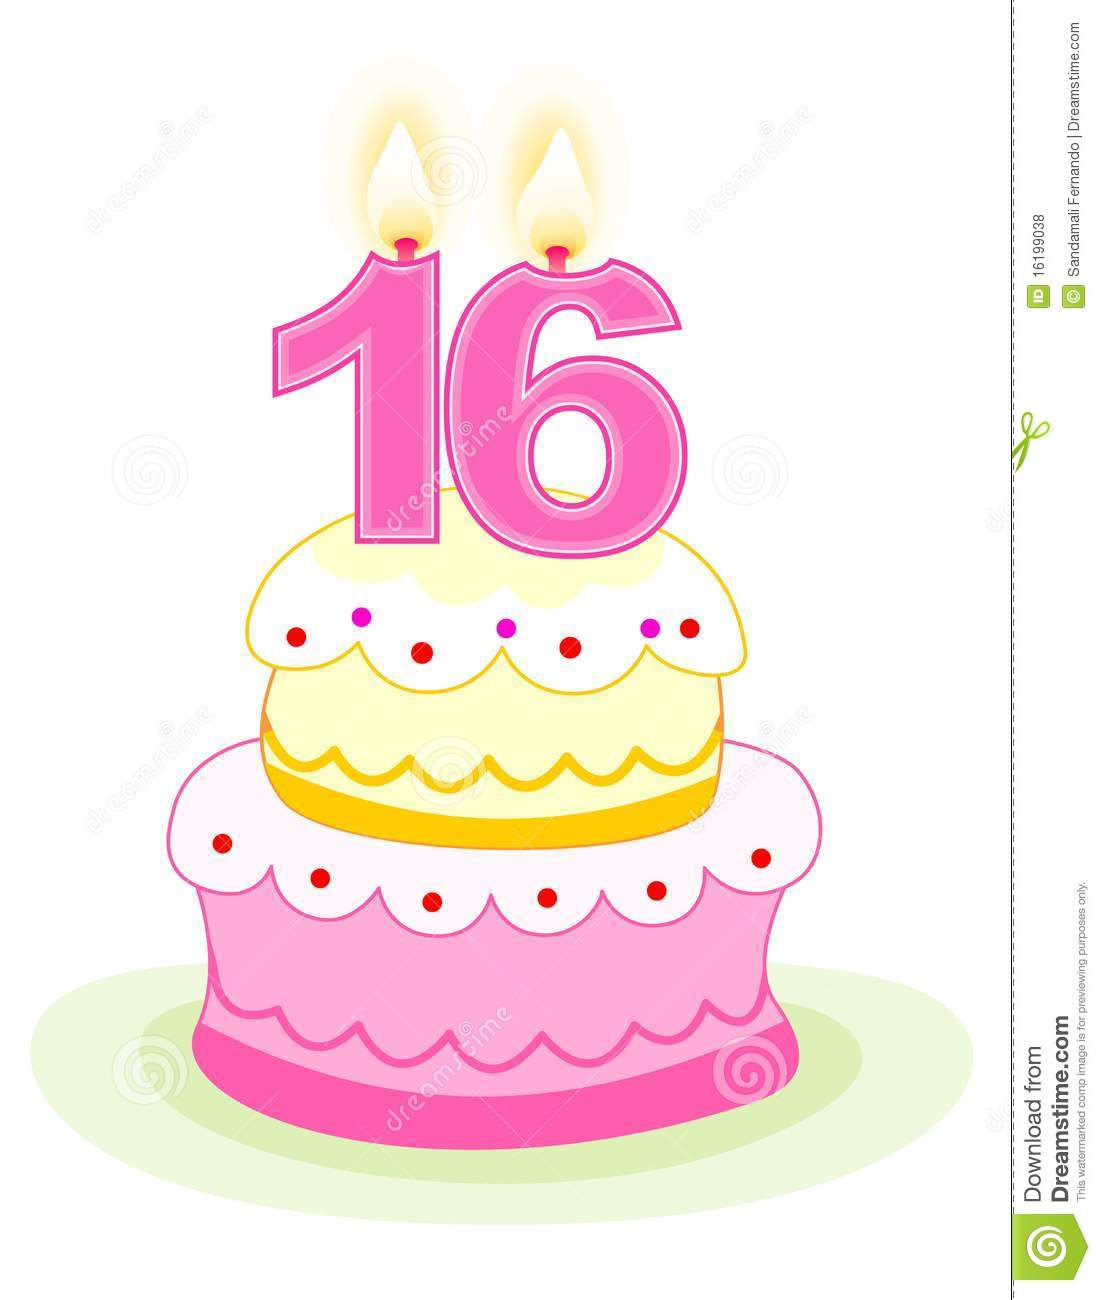 Sweet sixteen birthday cake with numeral candles isolated on white.